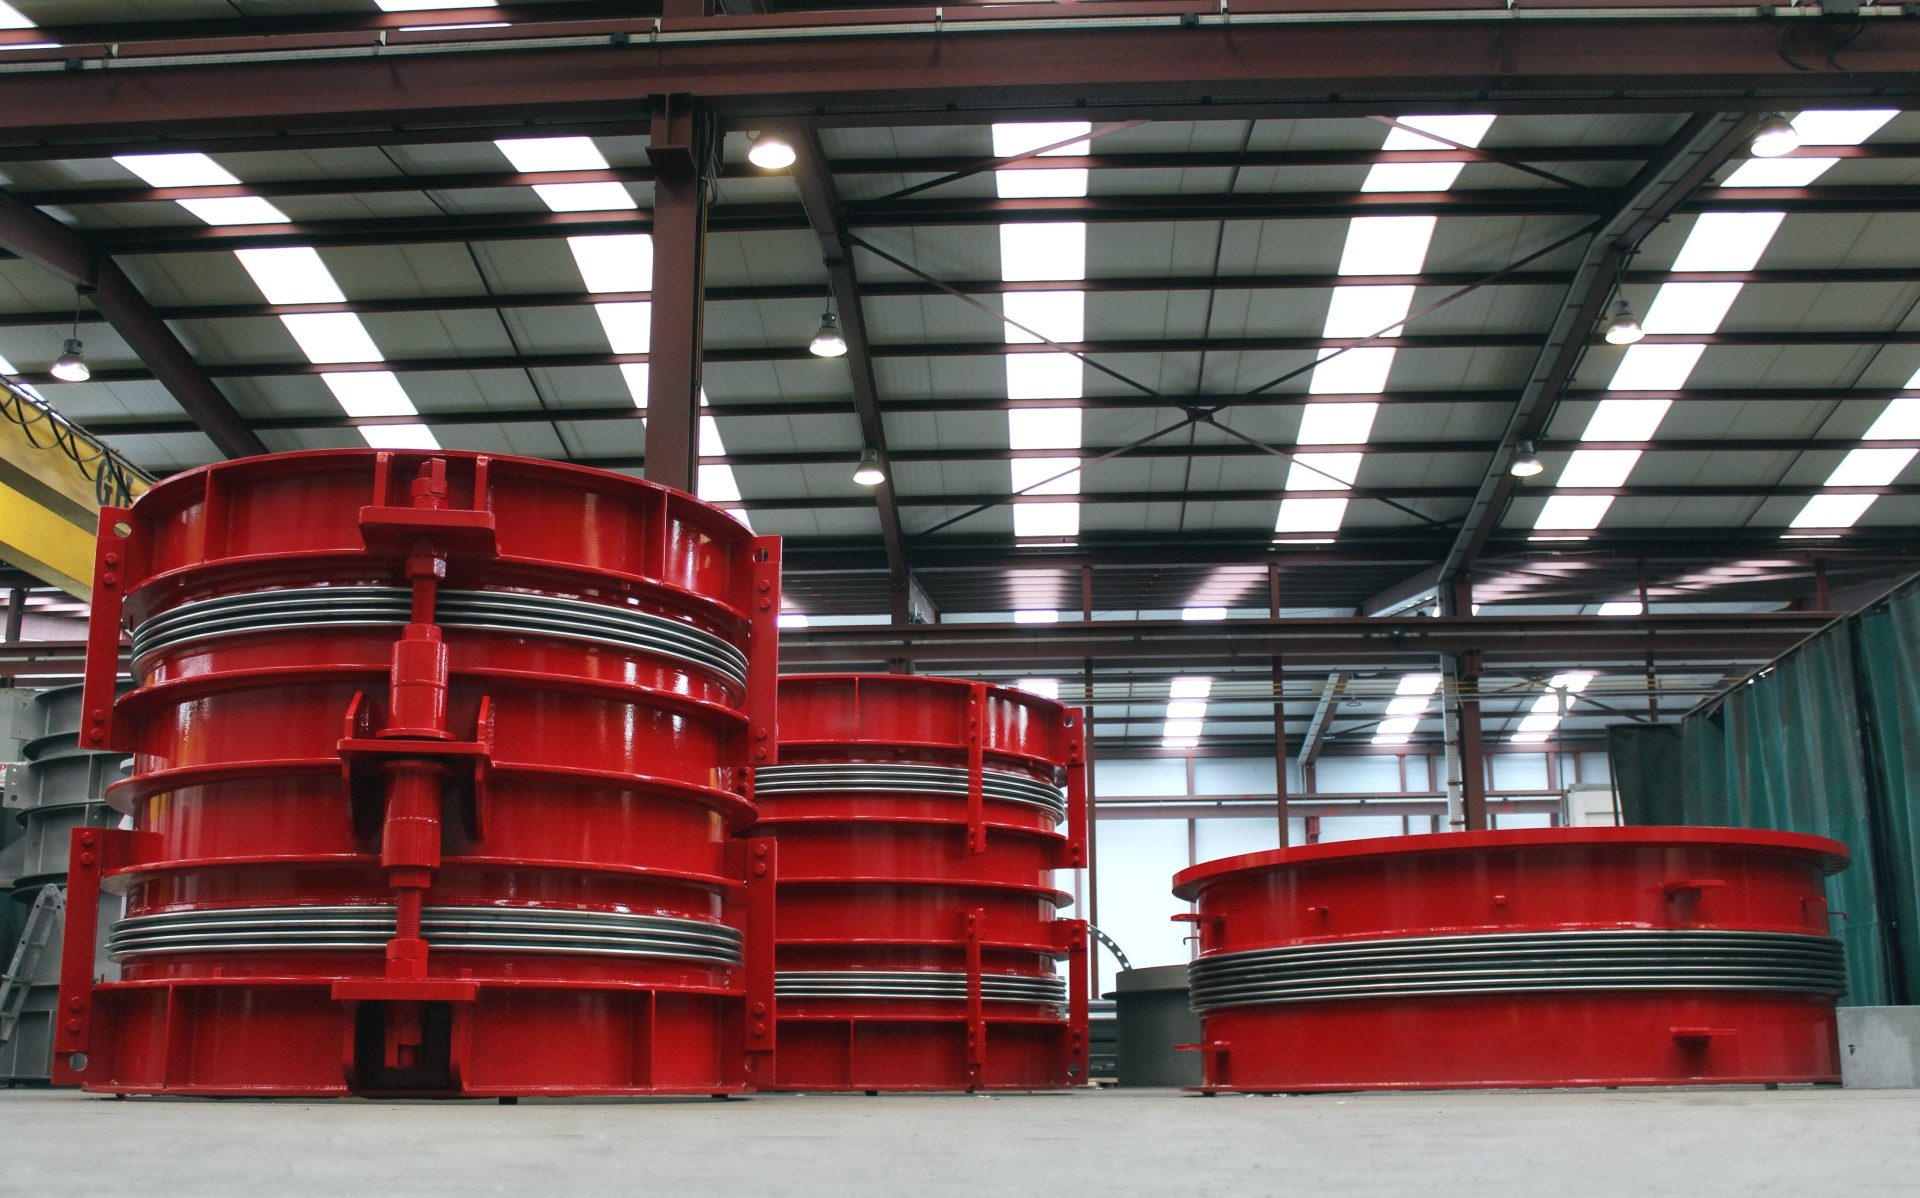 Delivery of Expansion Joints for Biomass Power Plant in Southwestern Europe